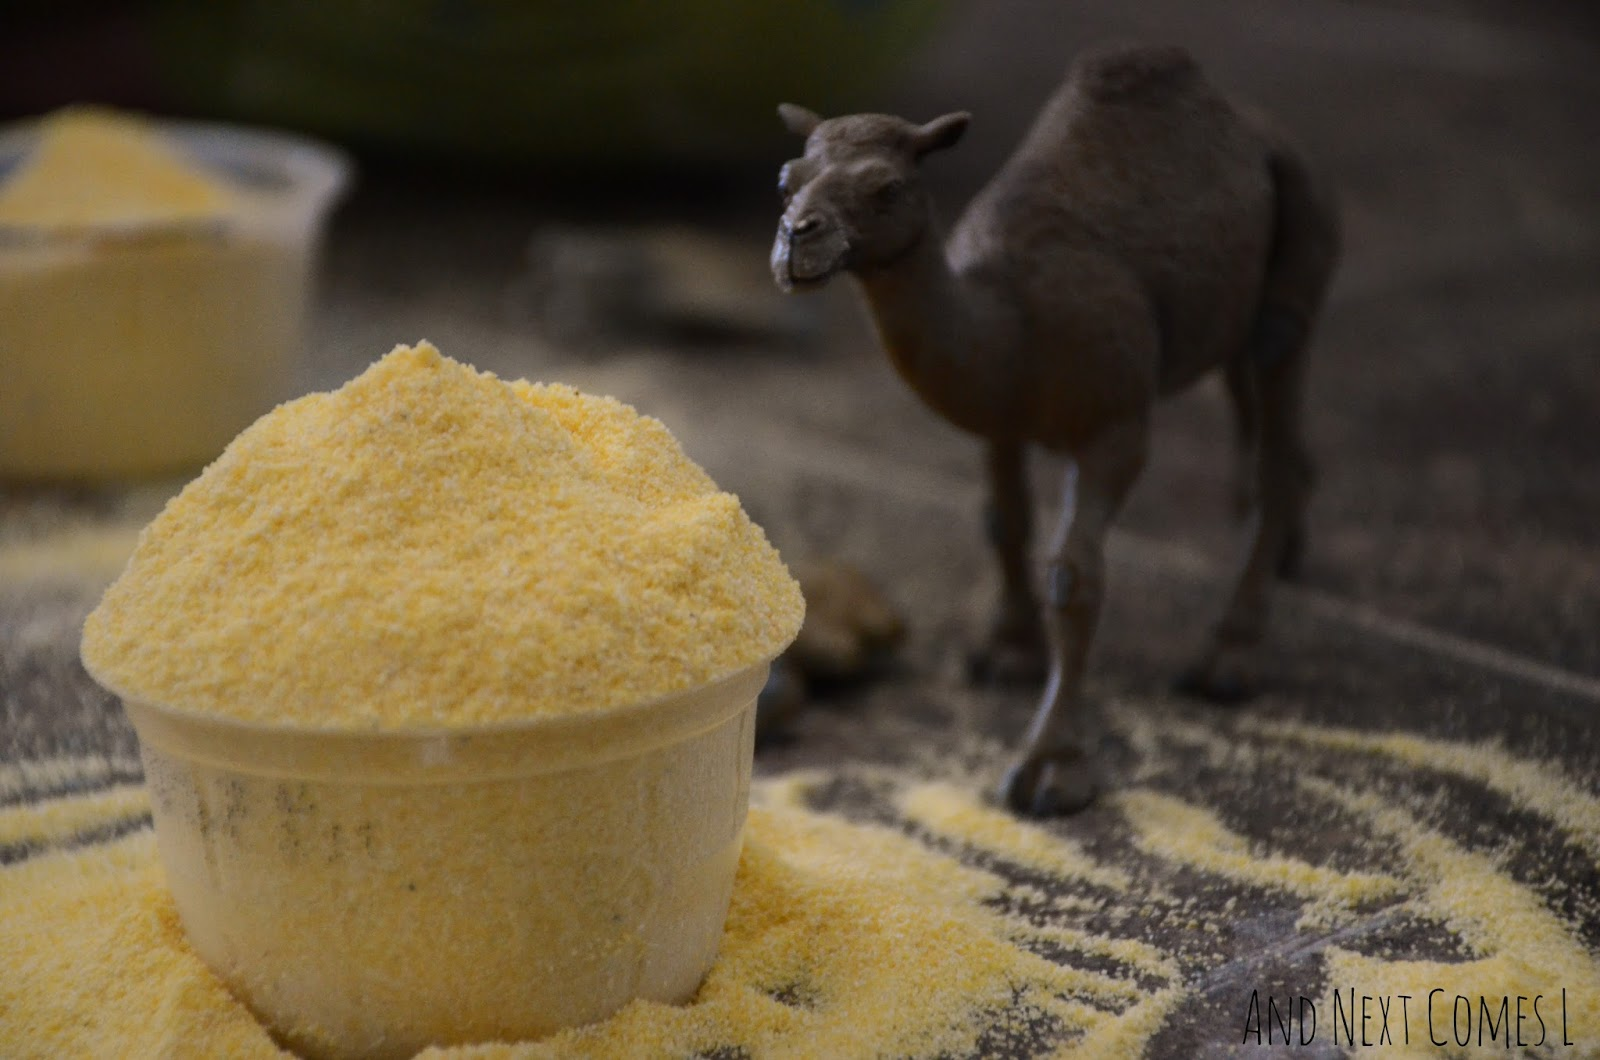 Close up of cornmeal and a camel from And Next Comes L